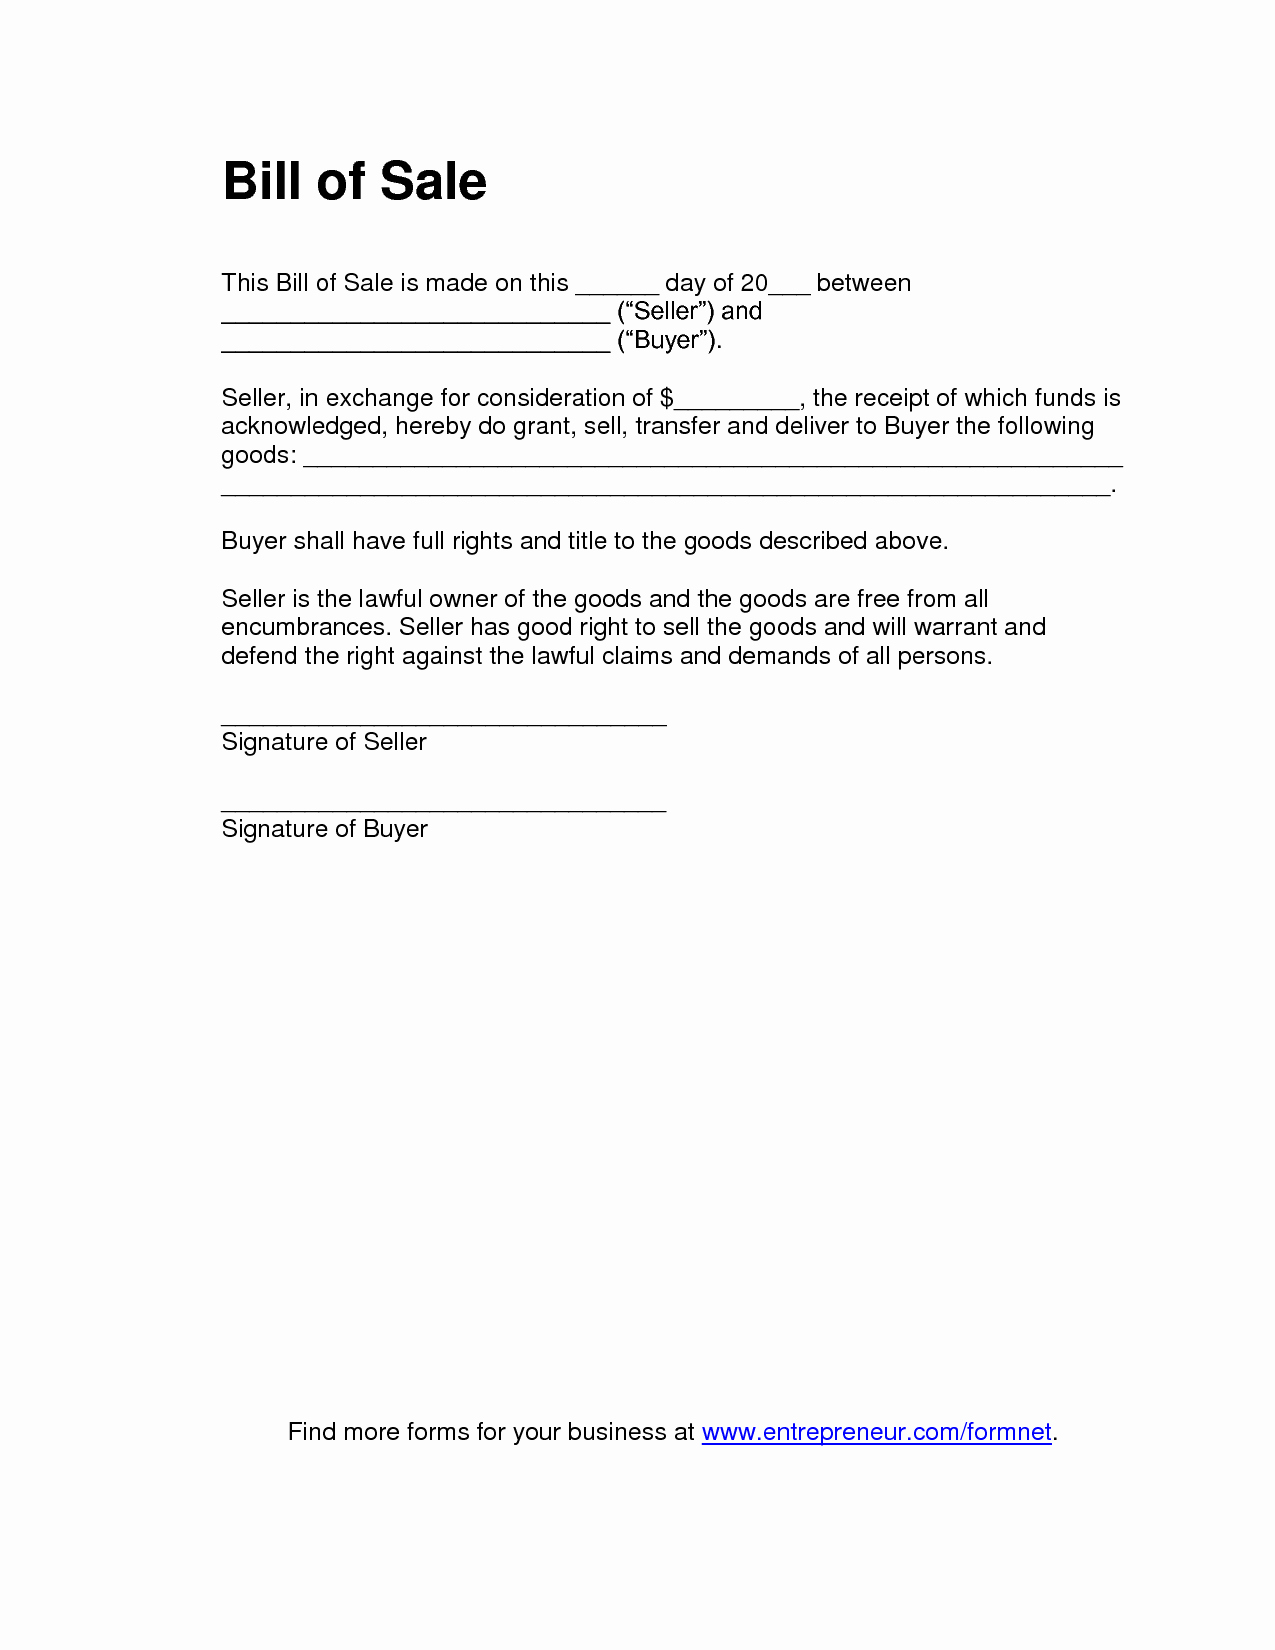 Bill Of Sale Sample form Lovely Printable Sample Tractor Bill Of Sale form